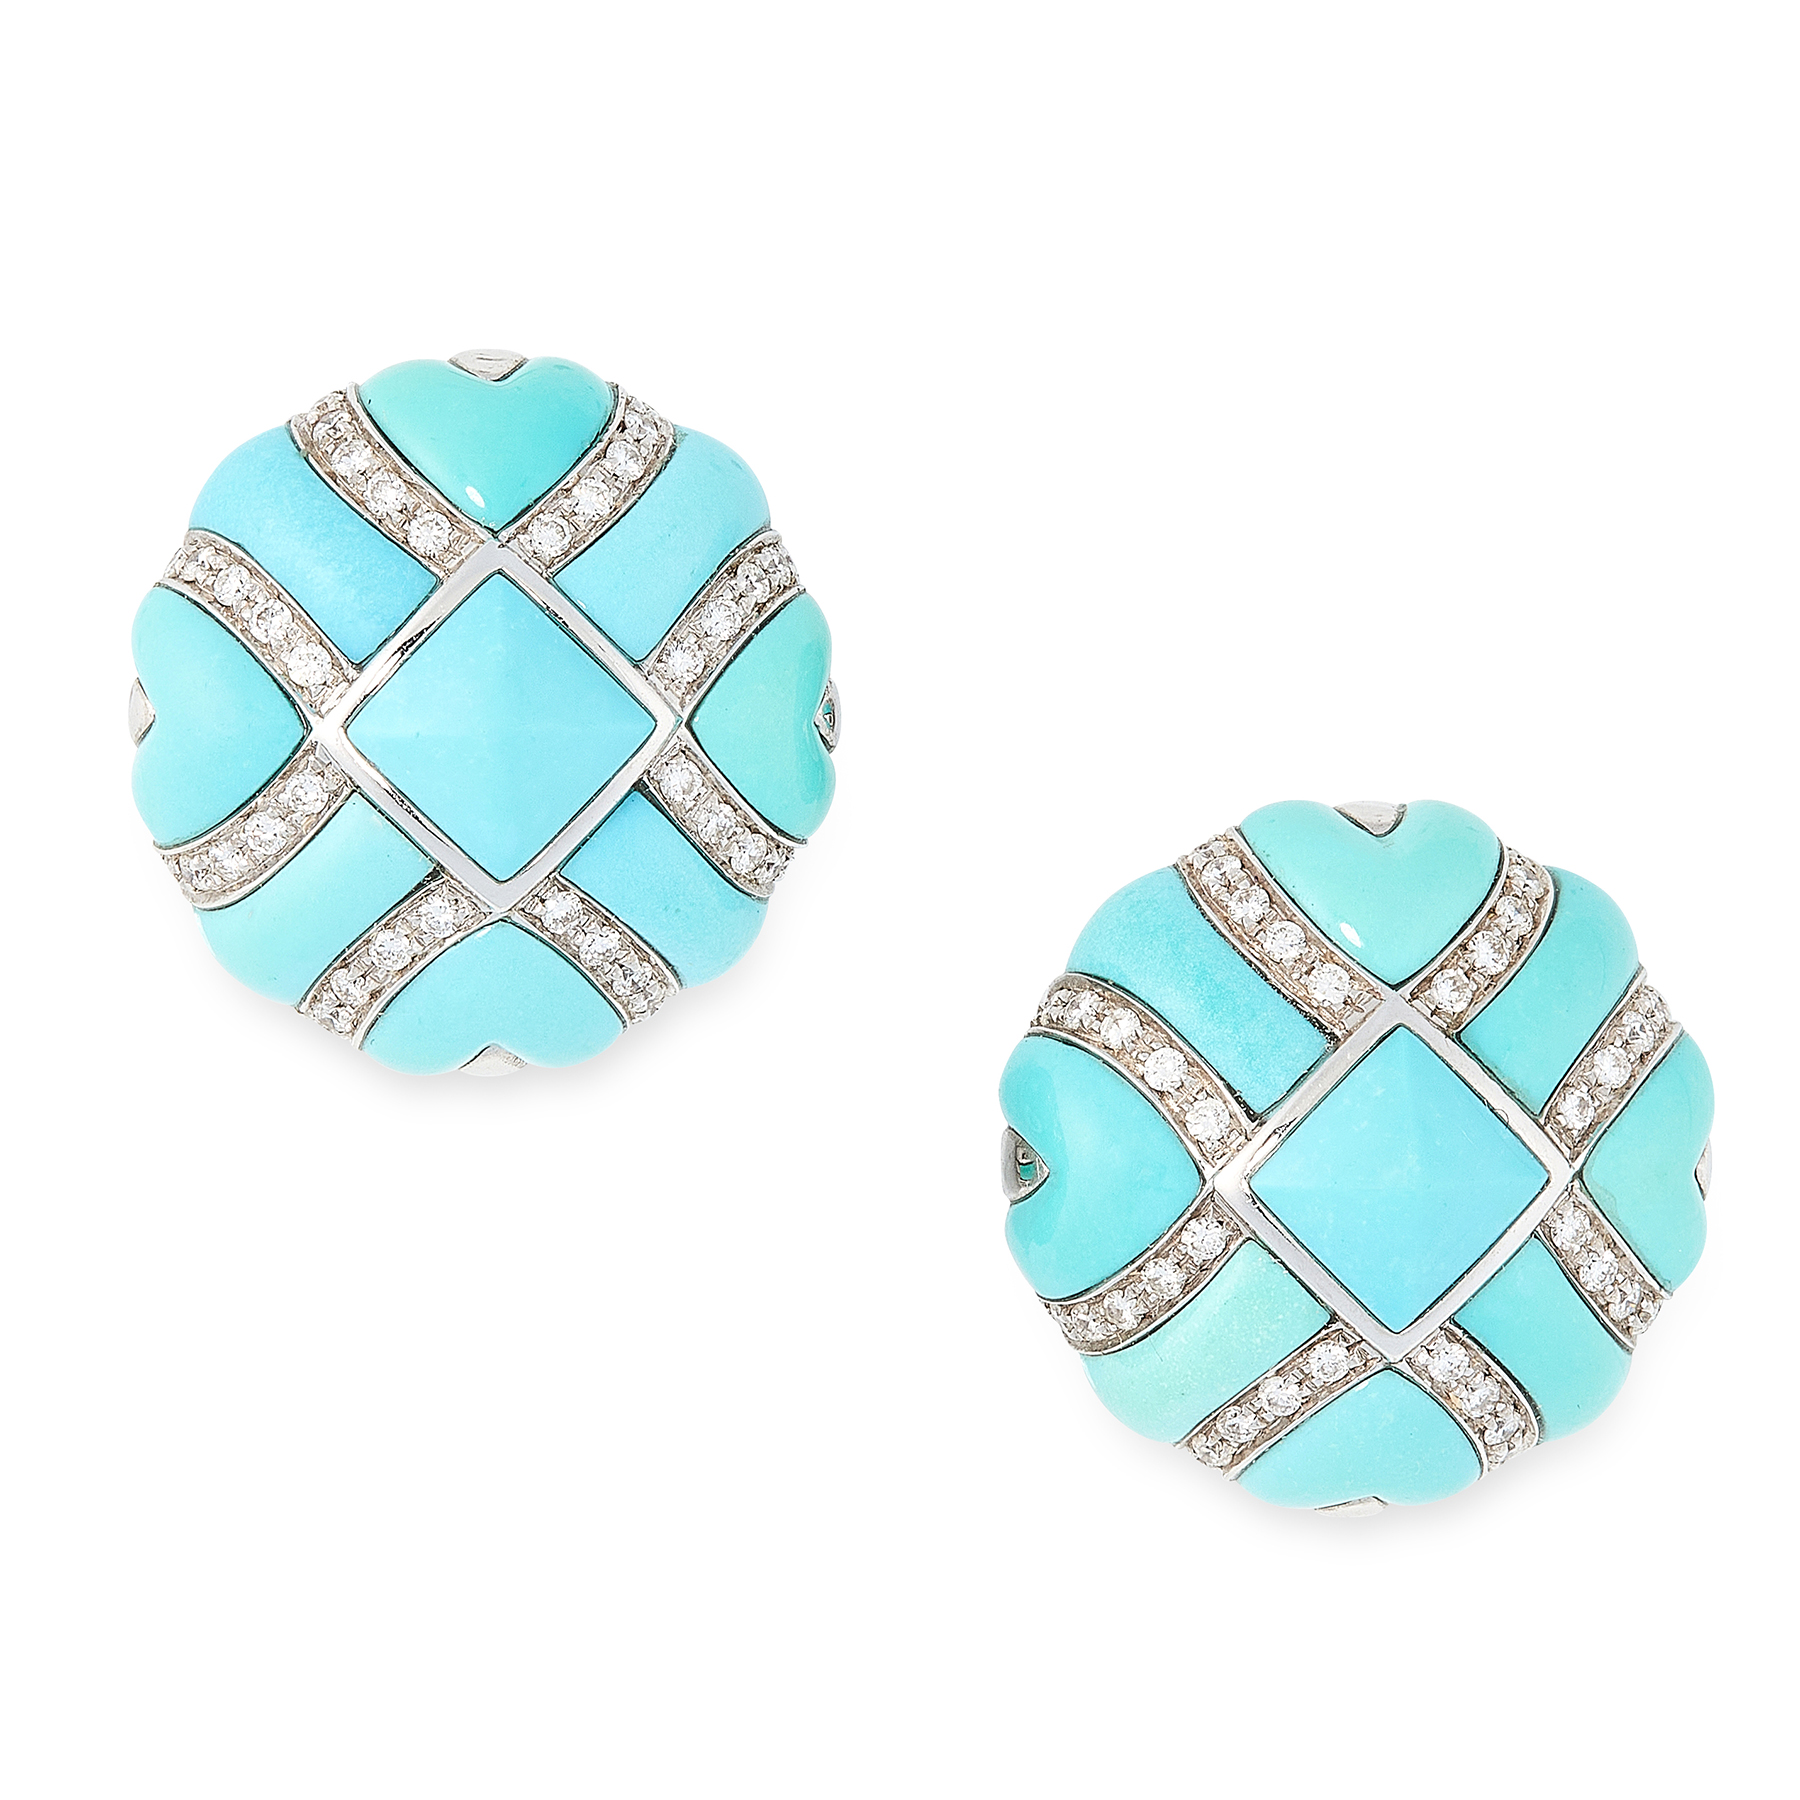 A PAIR OF VINTAGE TURQUOISE AND DIAMOND EARRINGS in 18ct white gold, each set with a square